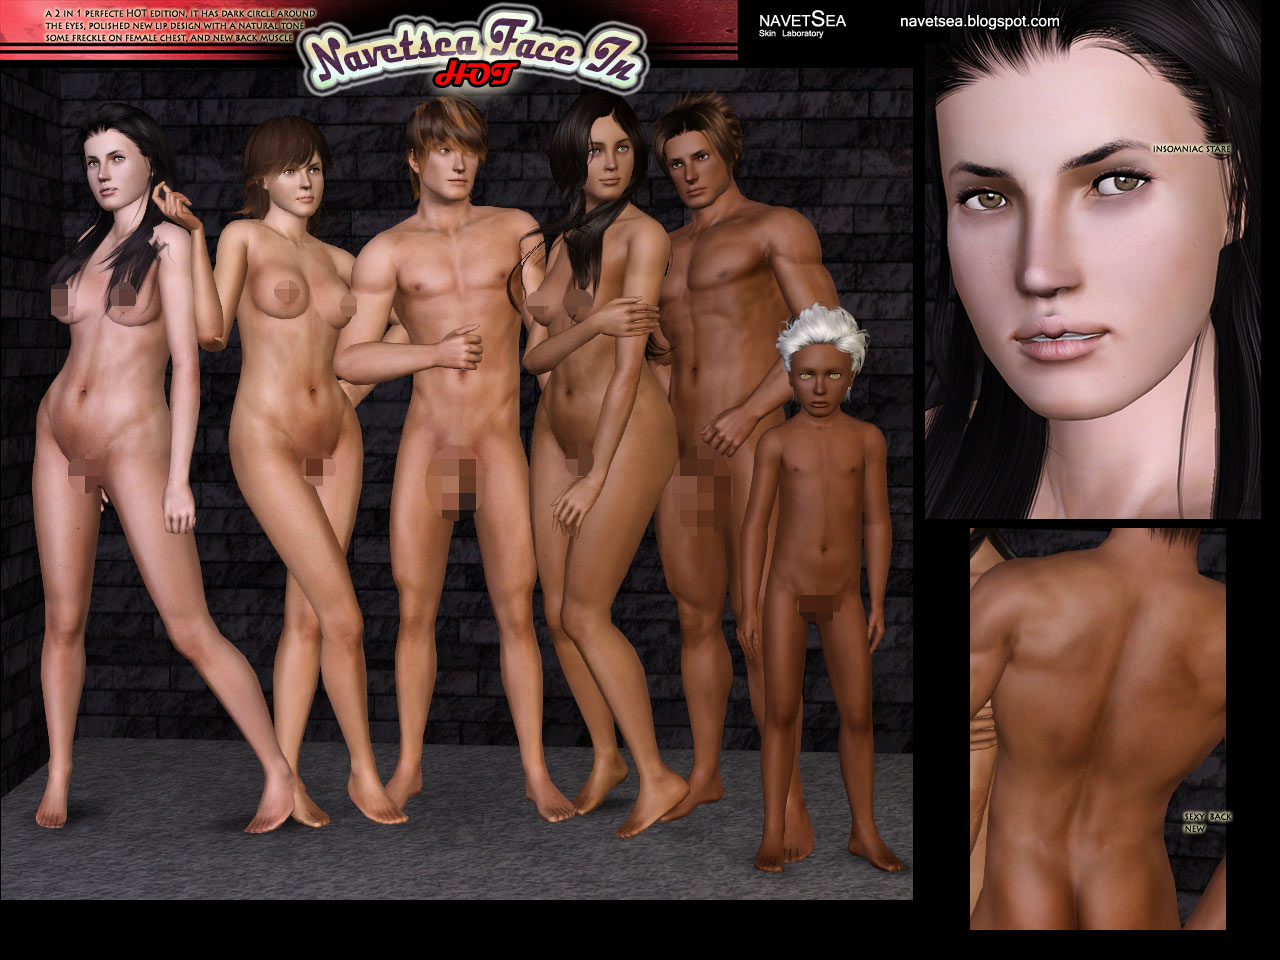 The sims 2 naked skins anime pic